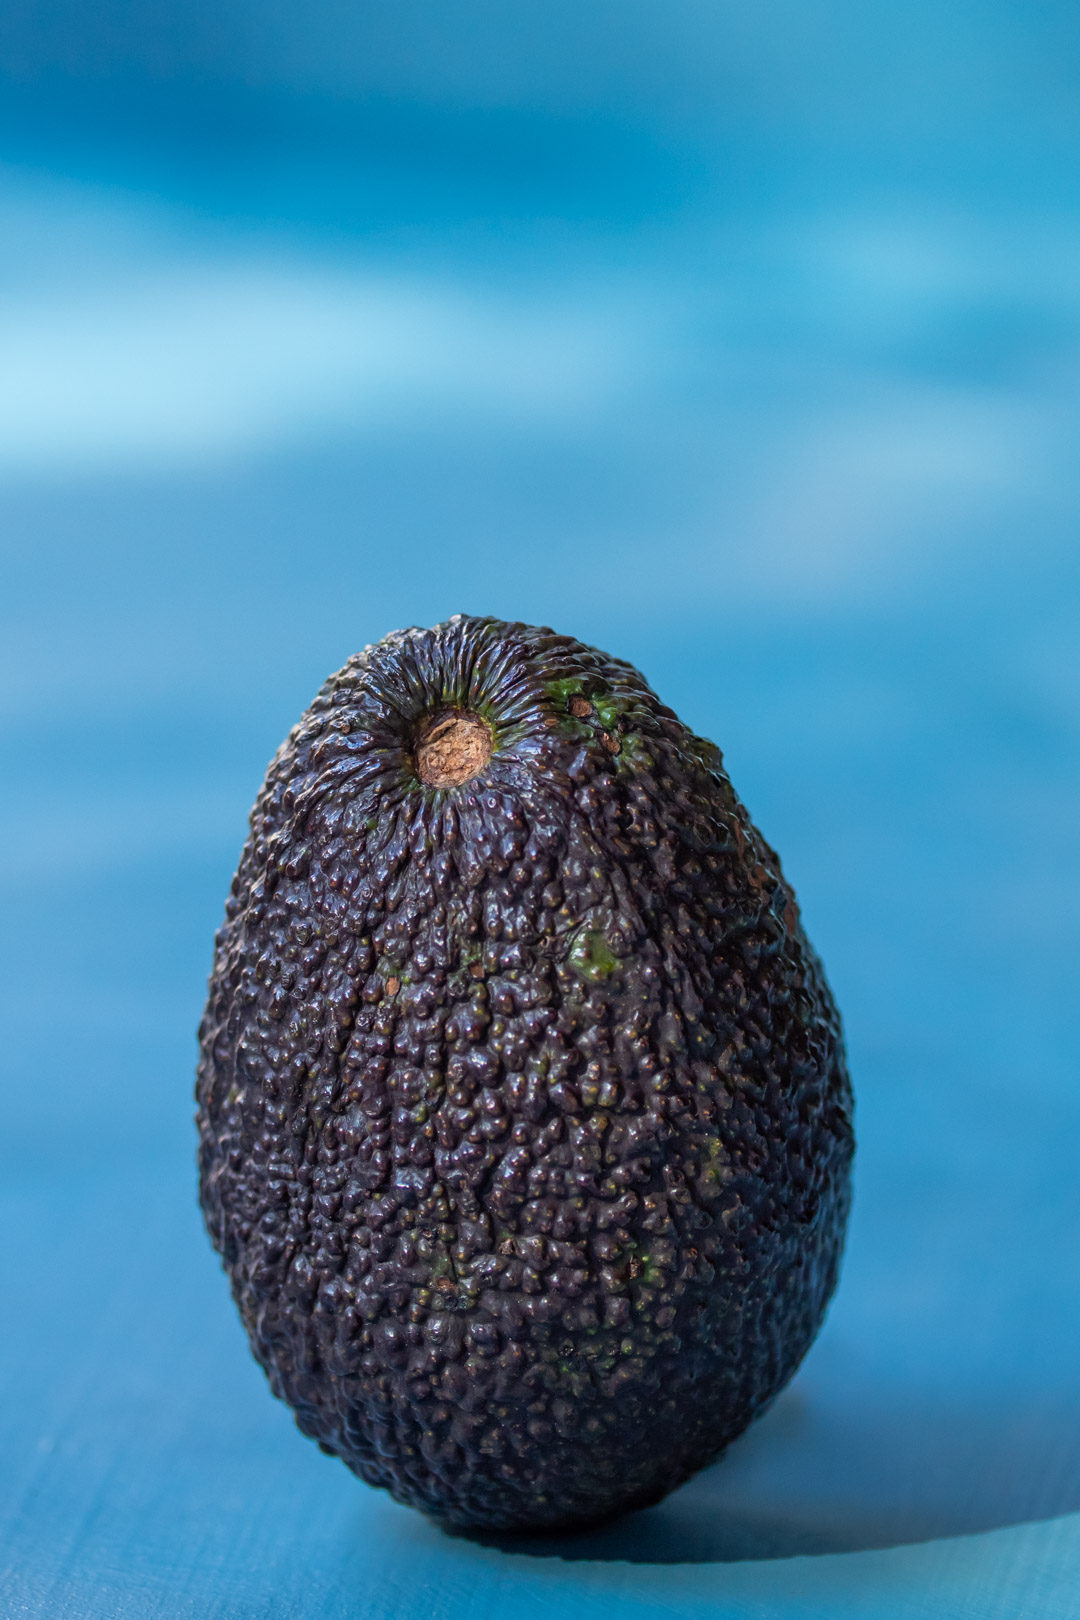 avocado still life